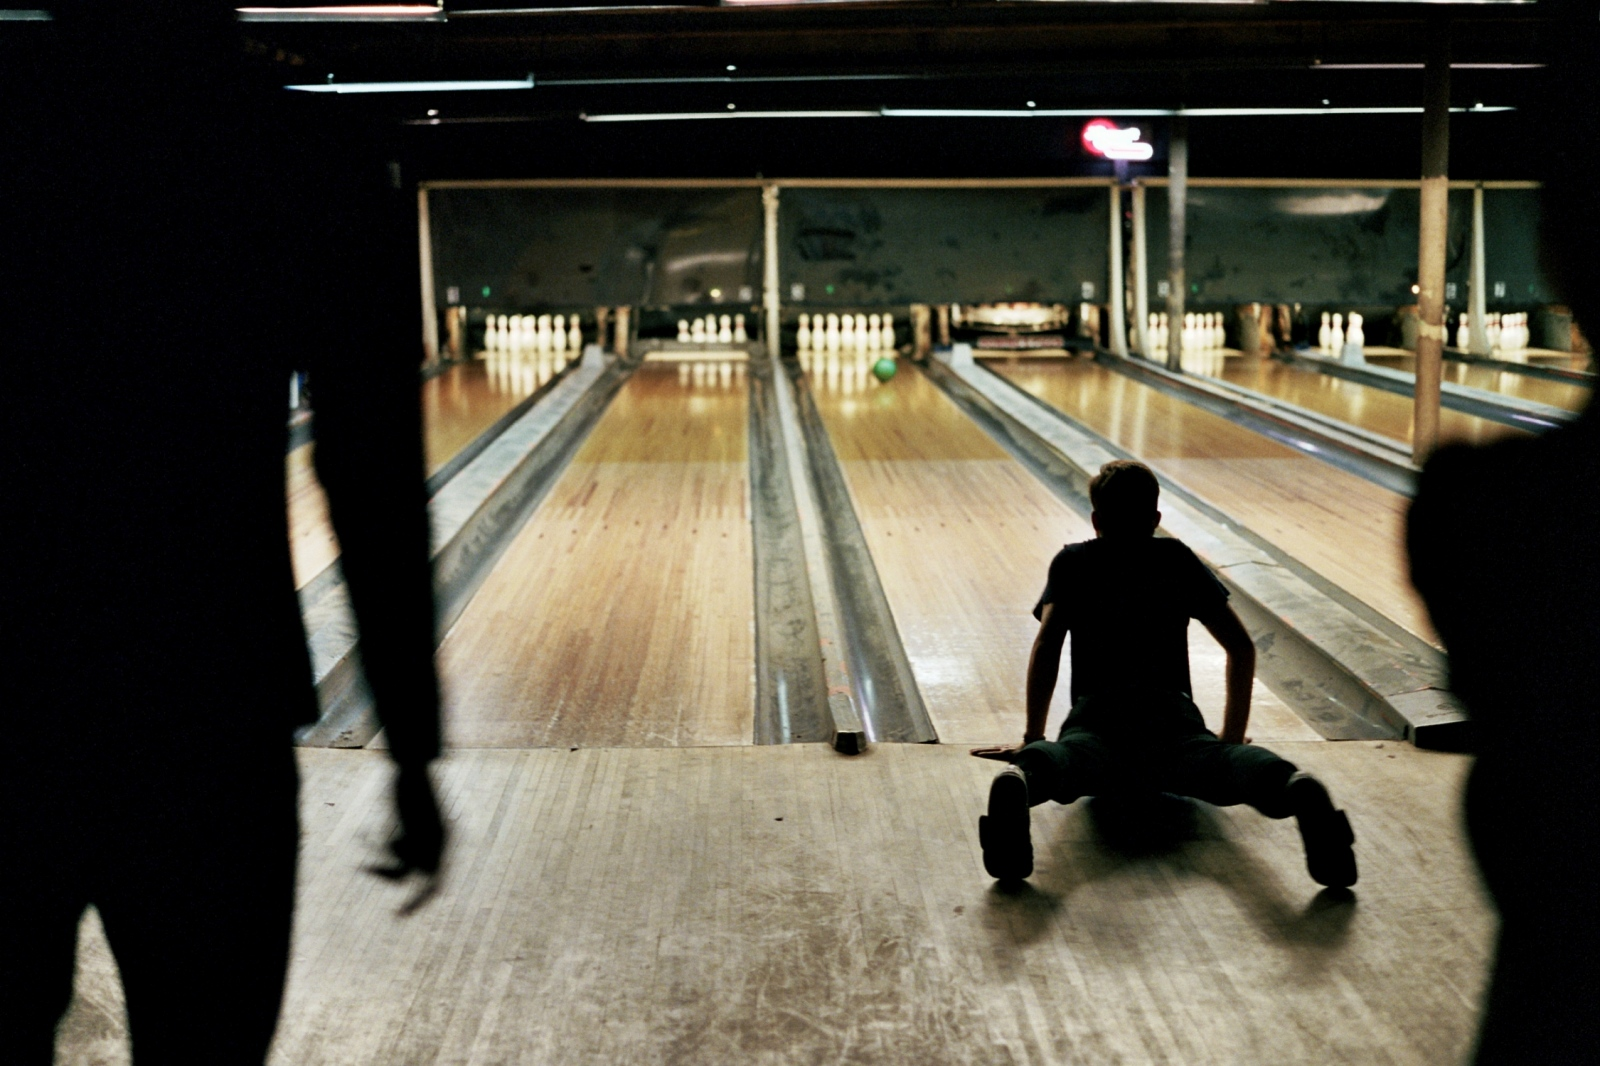 Denis trying to bowl, New York, NY